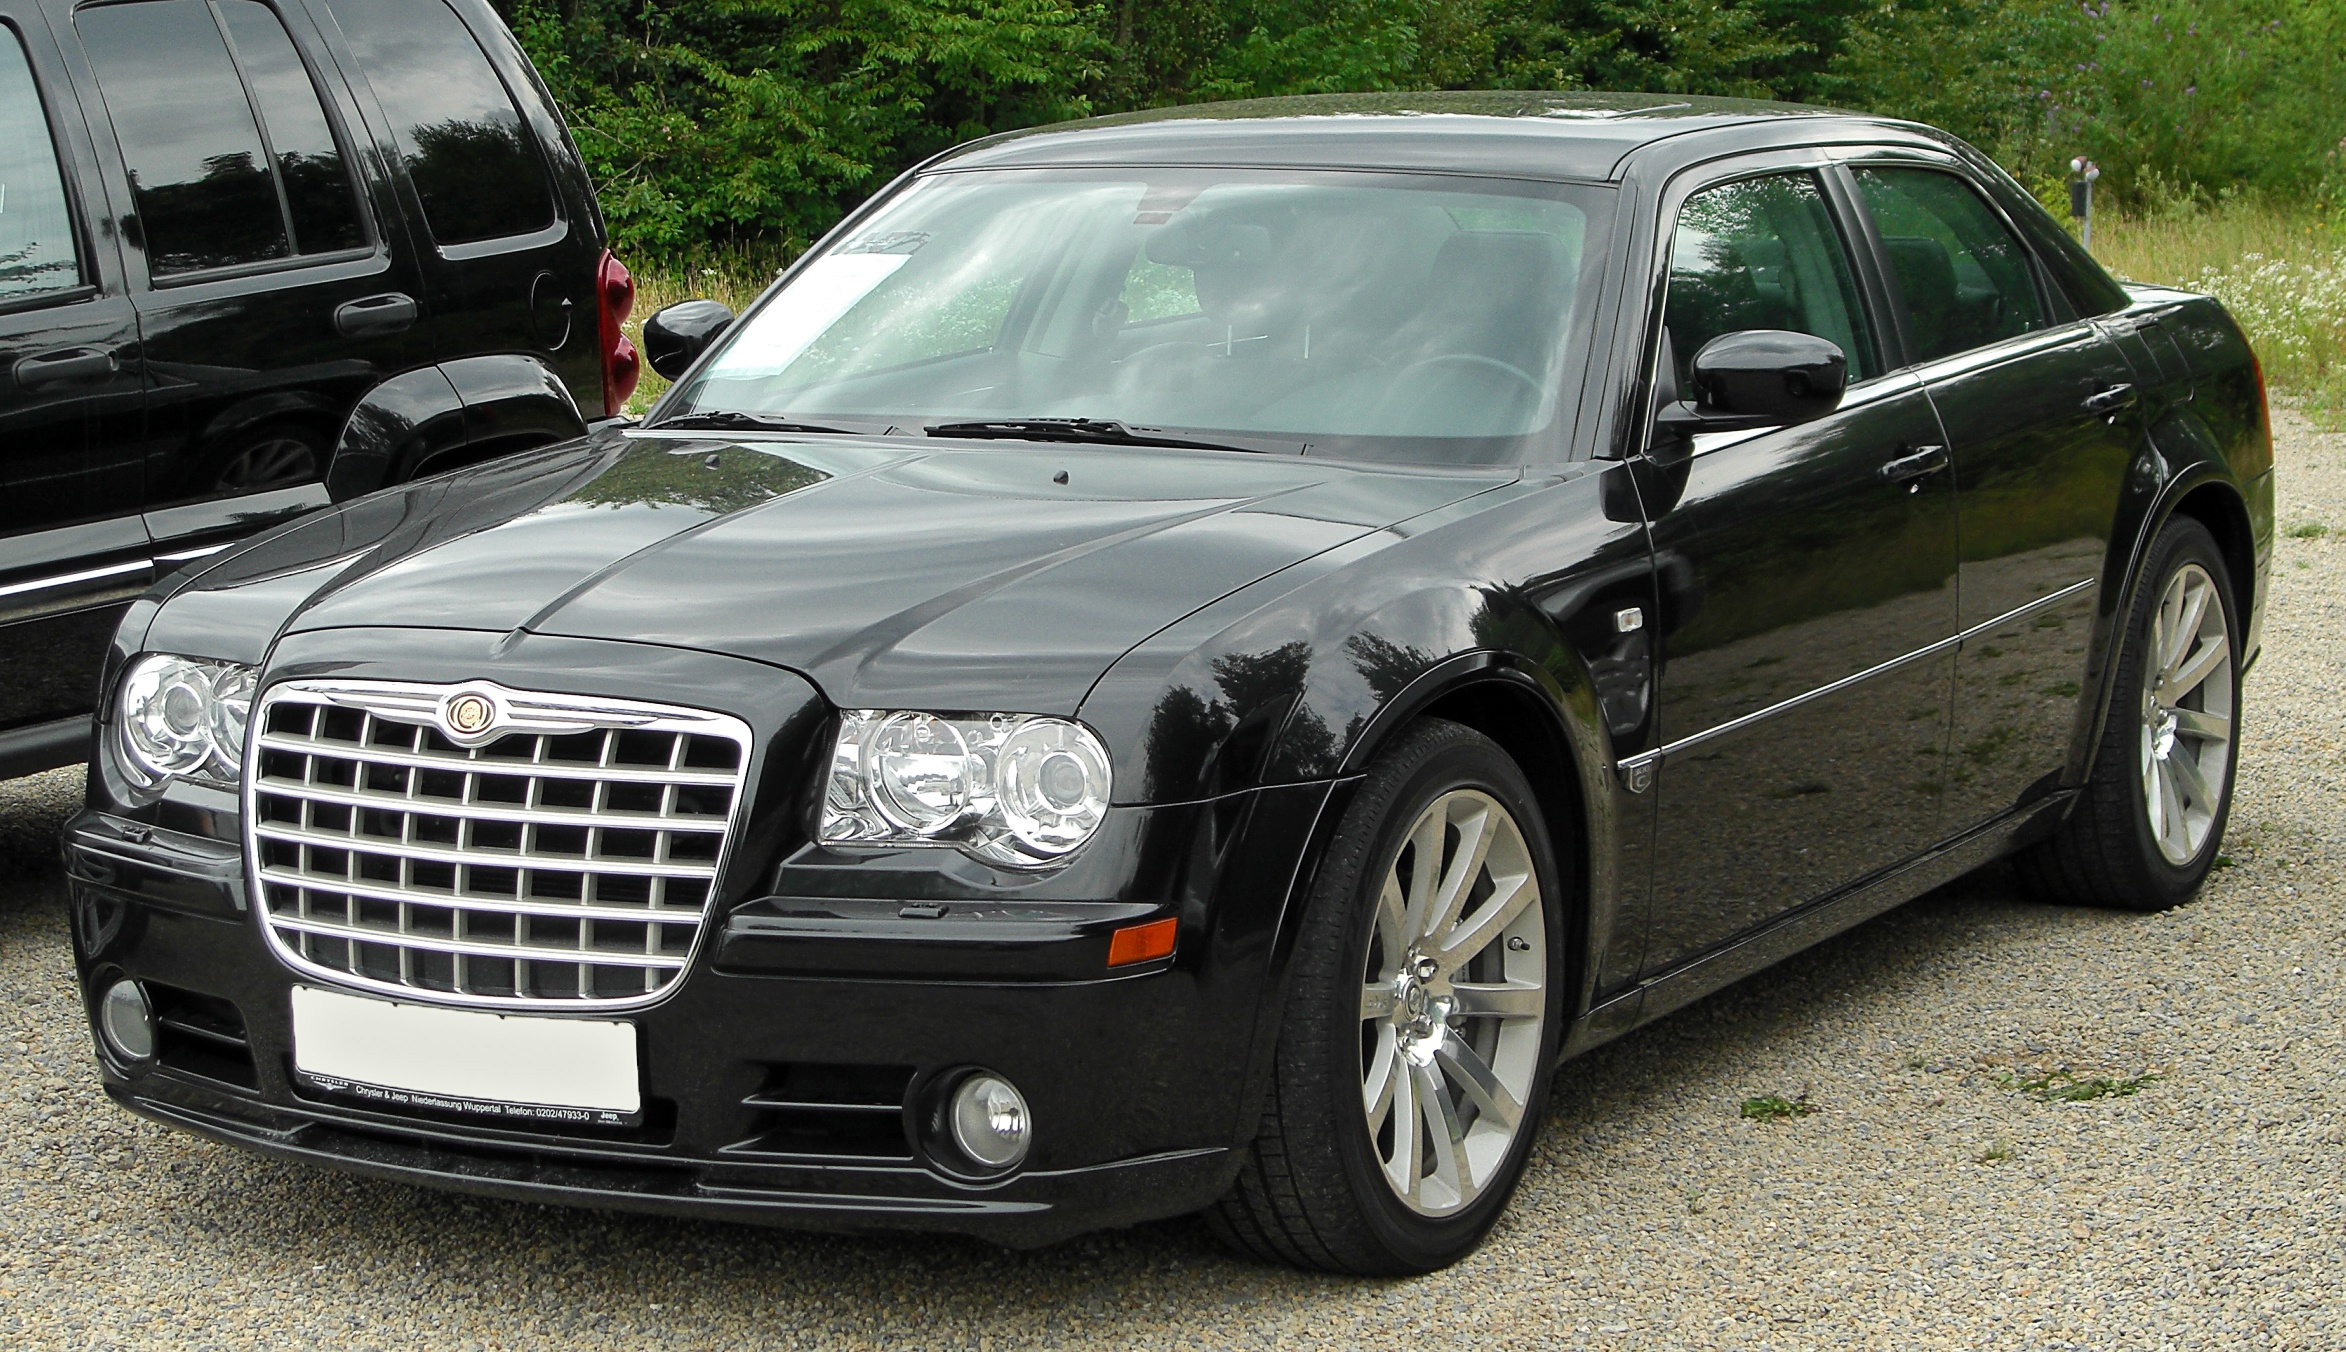 chrysler_300c_srt8_6.1_front_20100801